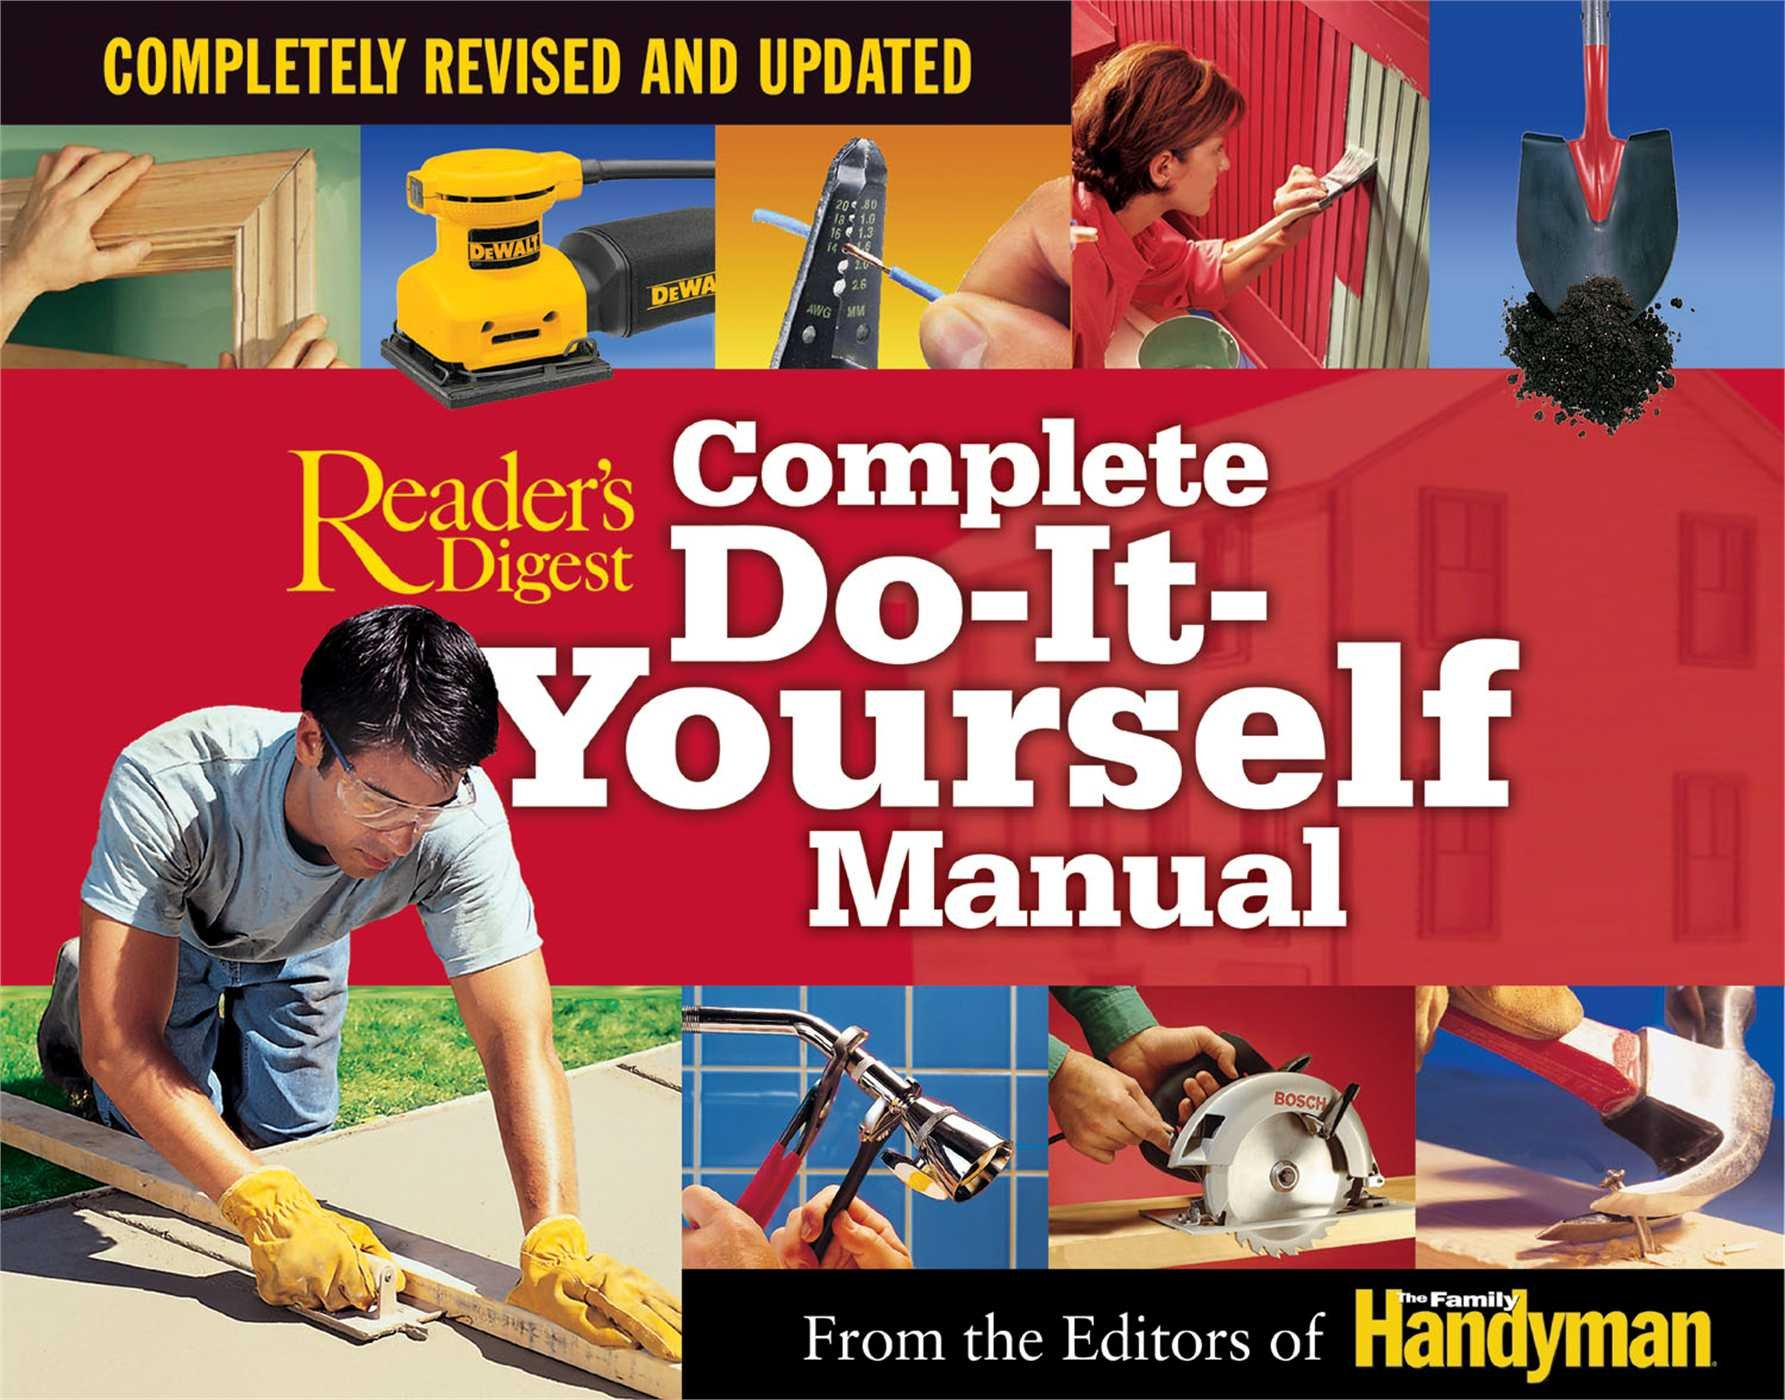 complete do it yourself manual completely revised and updated rh amazon com do it yourself manual pdf do it yourself manual 31-300 series